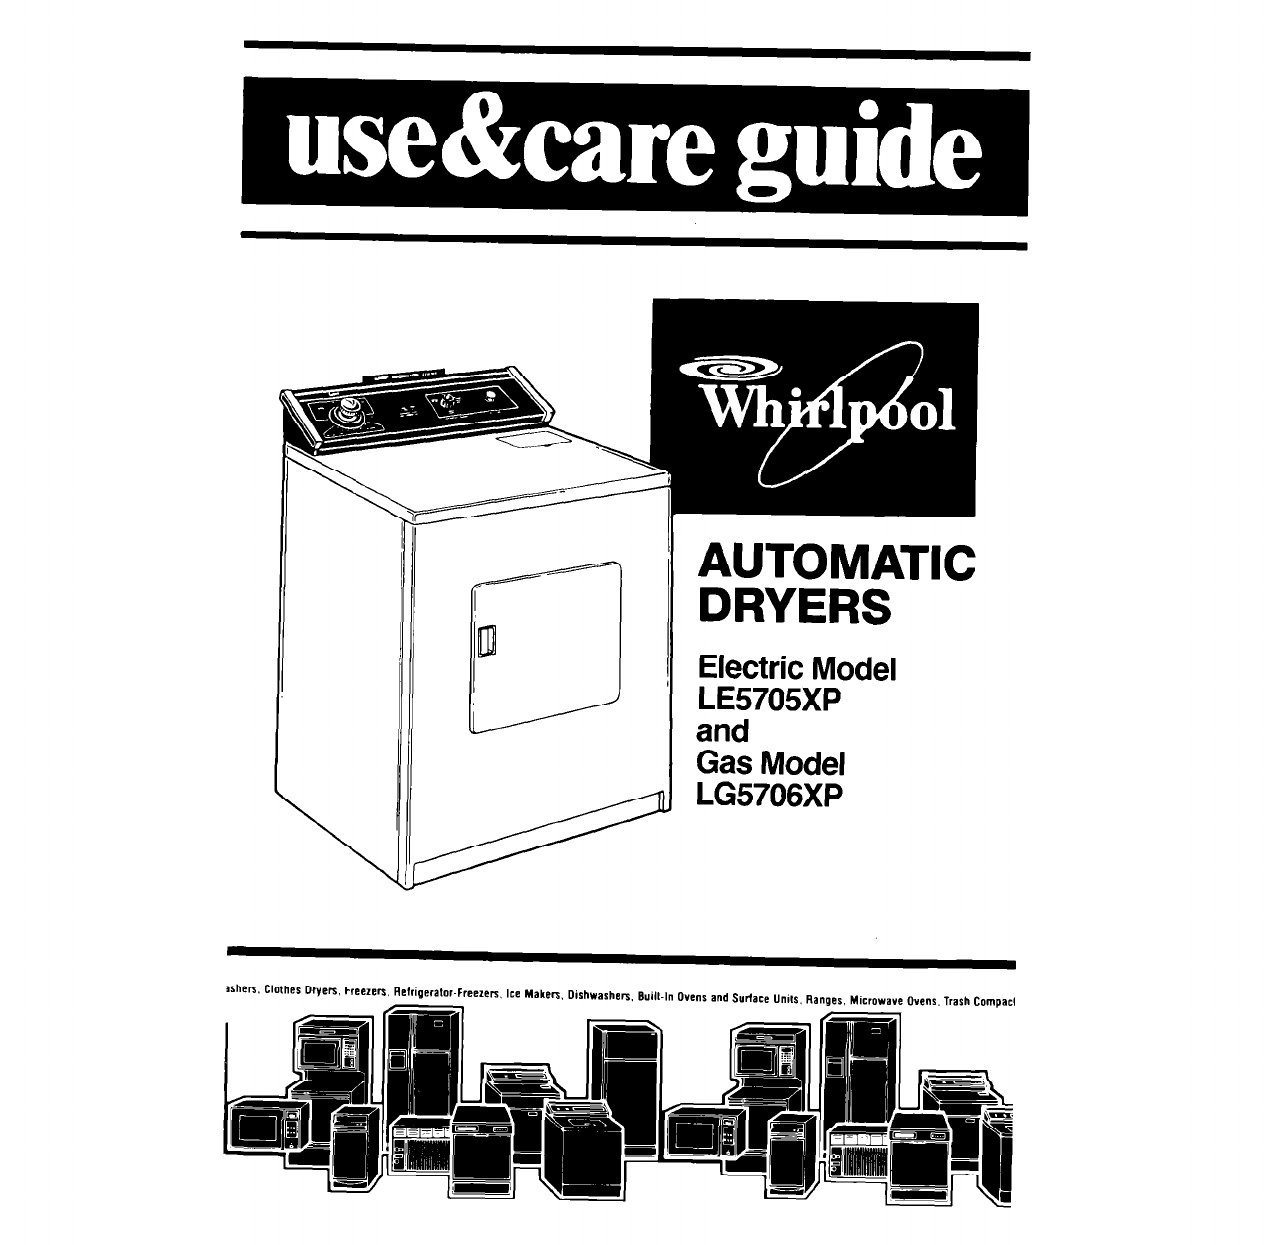 Whirlpool Clothes Dryer LE5705XP User Guide